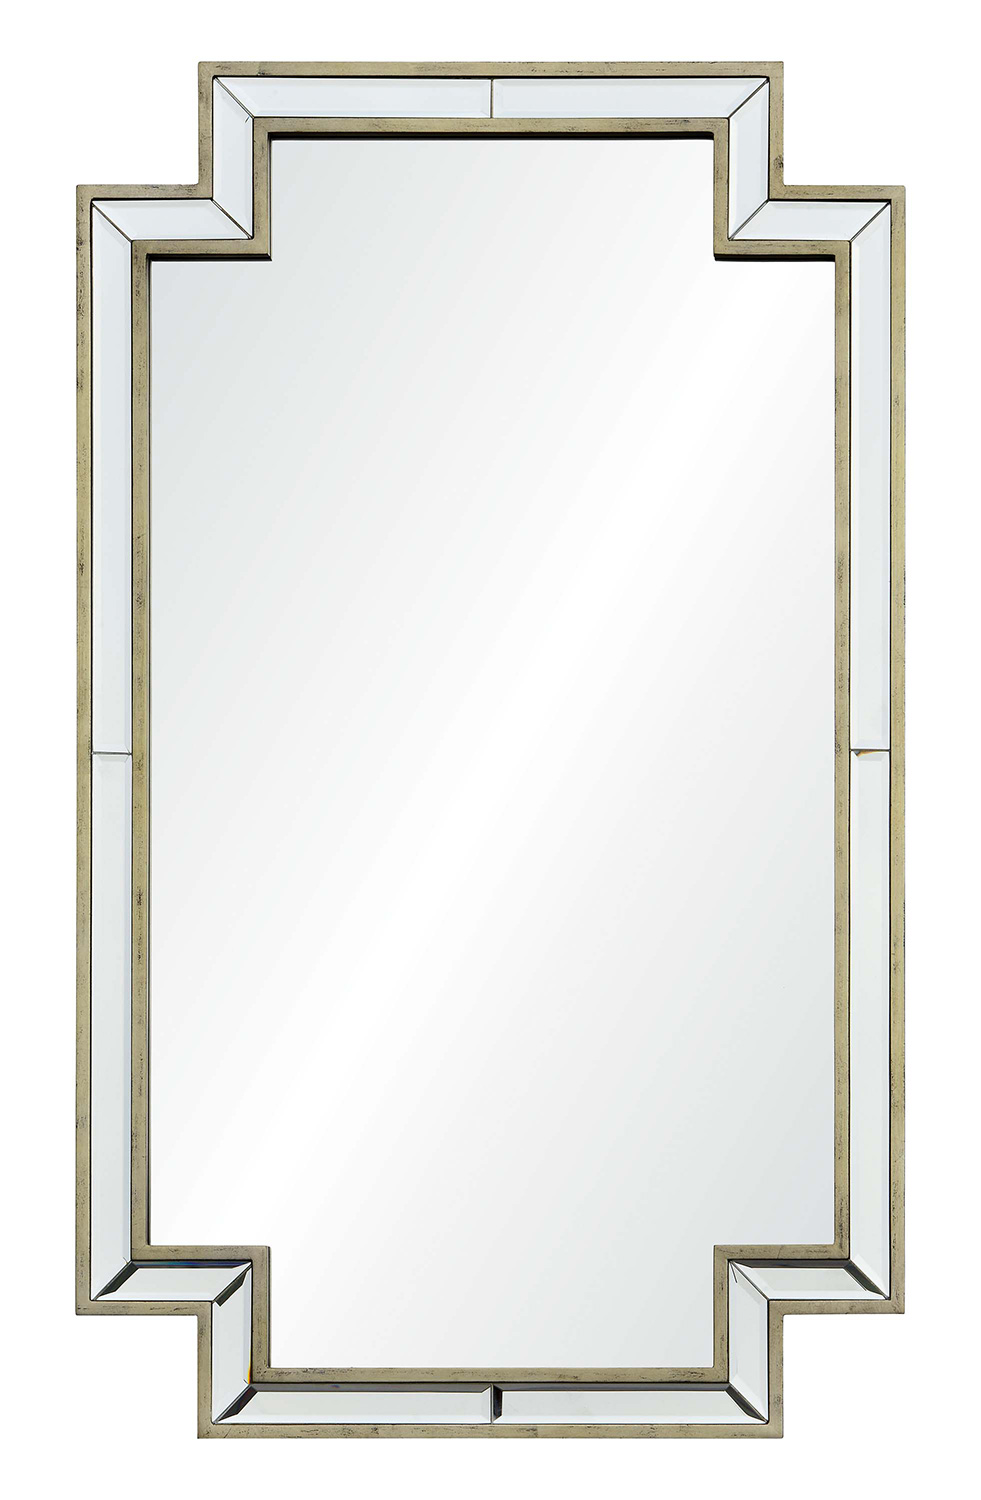 Ren-Wil Raton Rectangular Mirror - Antique Champagne Silver